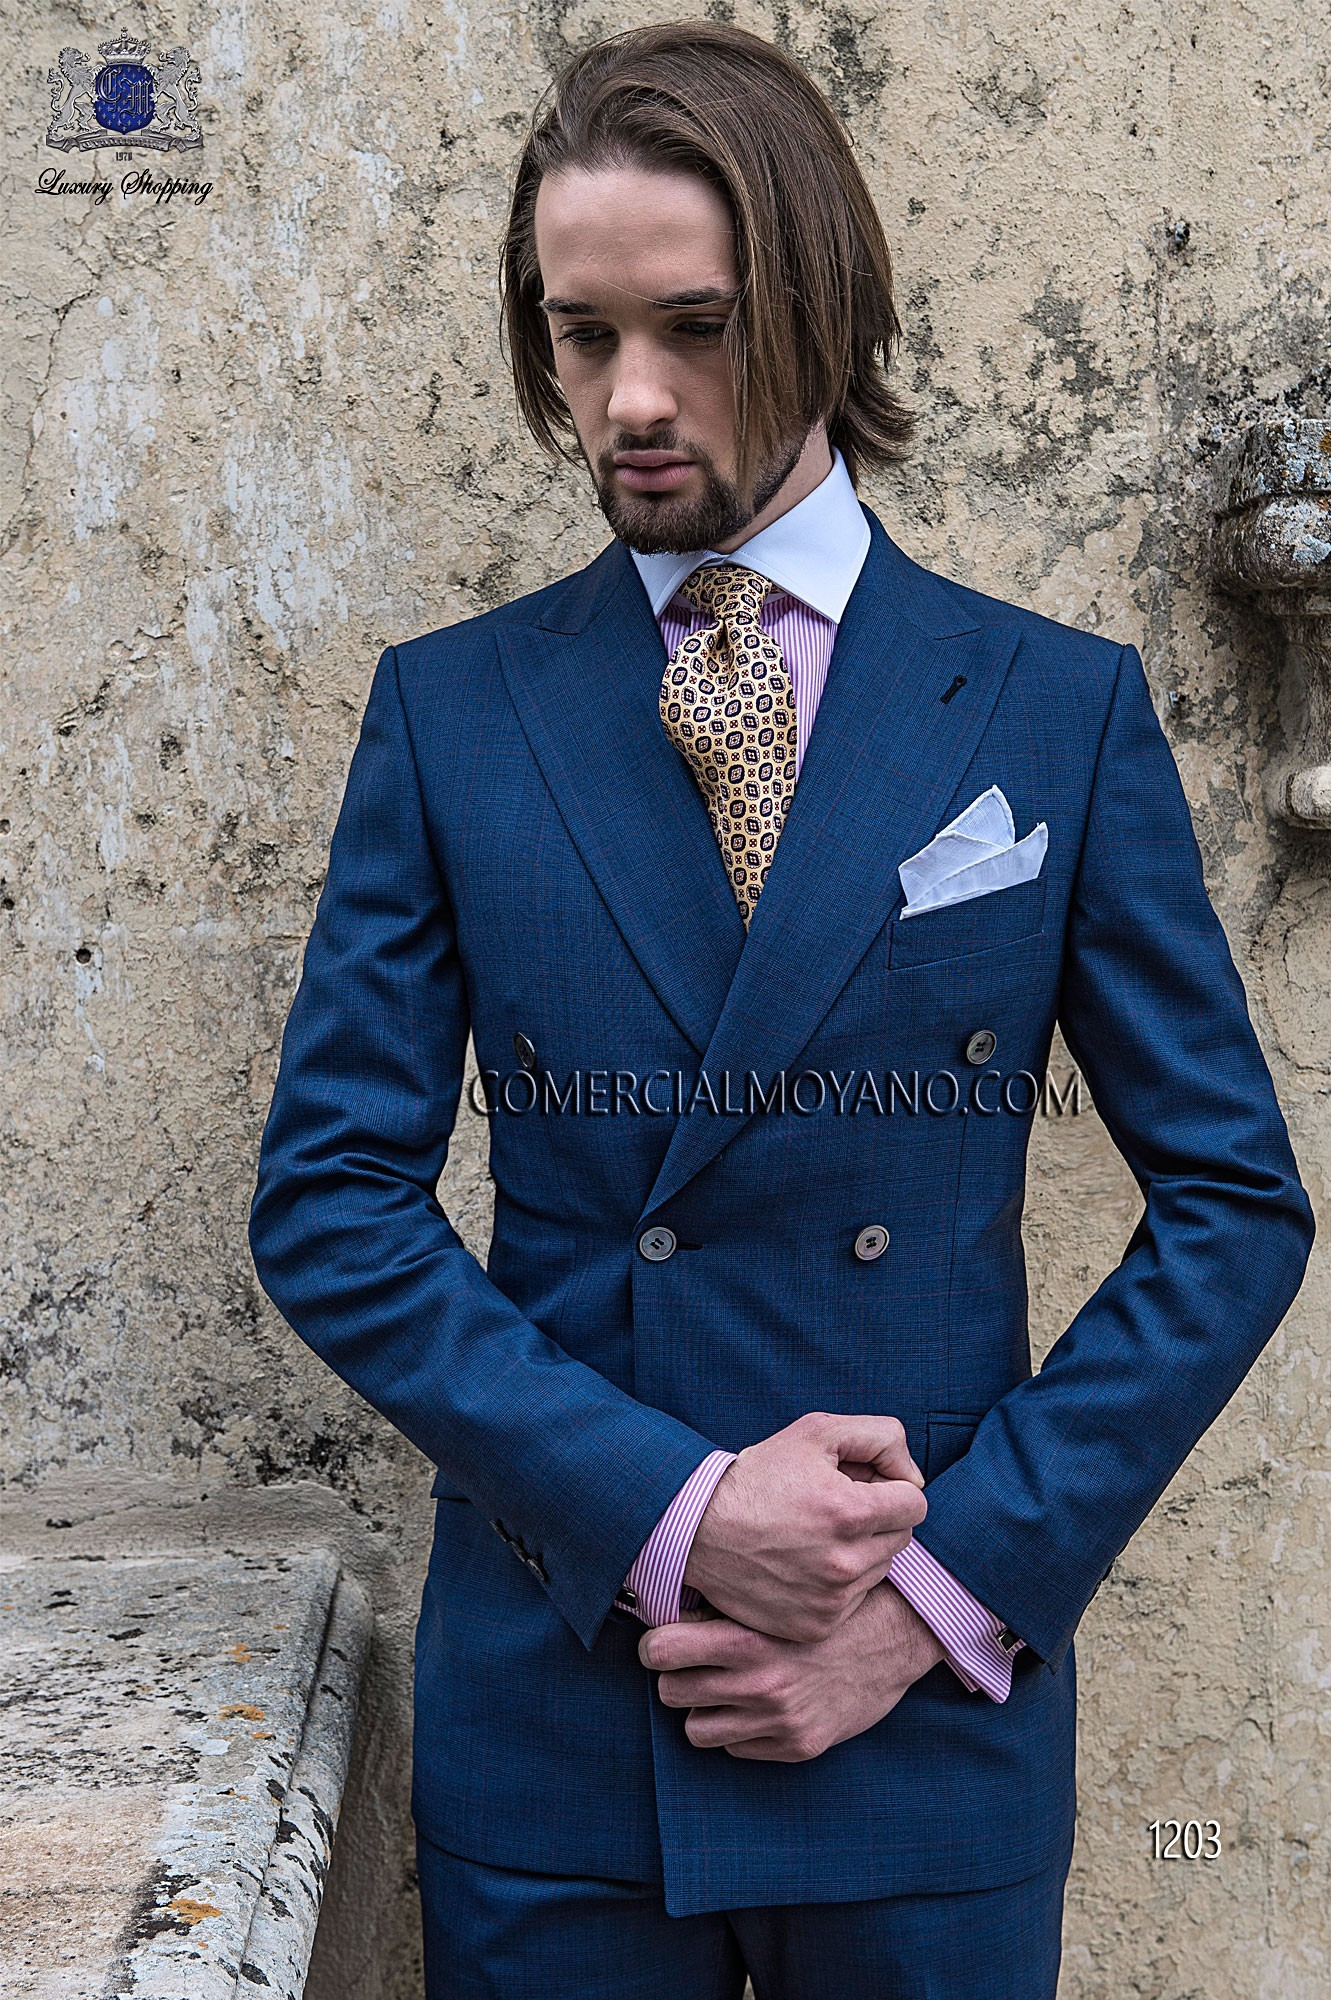 Italian bespoke double breasted wedding suit 1203 Ottavio Nuccio Gala.